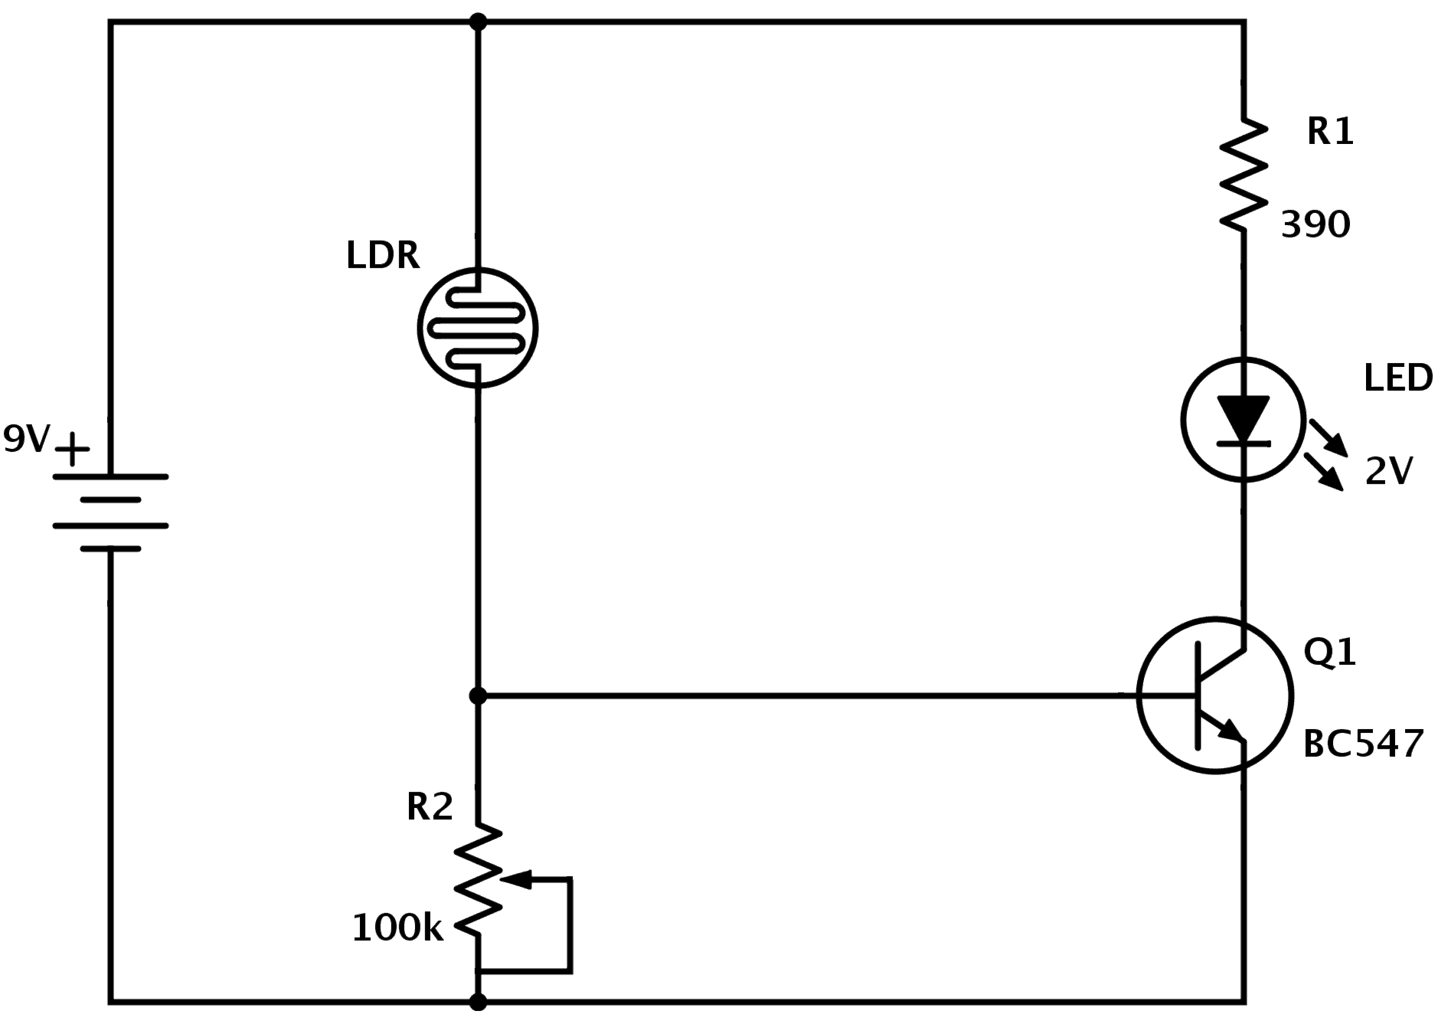 Ldr Circuit Diagram Build Electronic Circuits Thermometer With Receiver And Transmitter